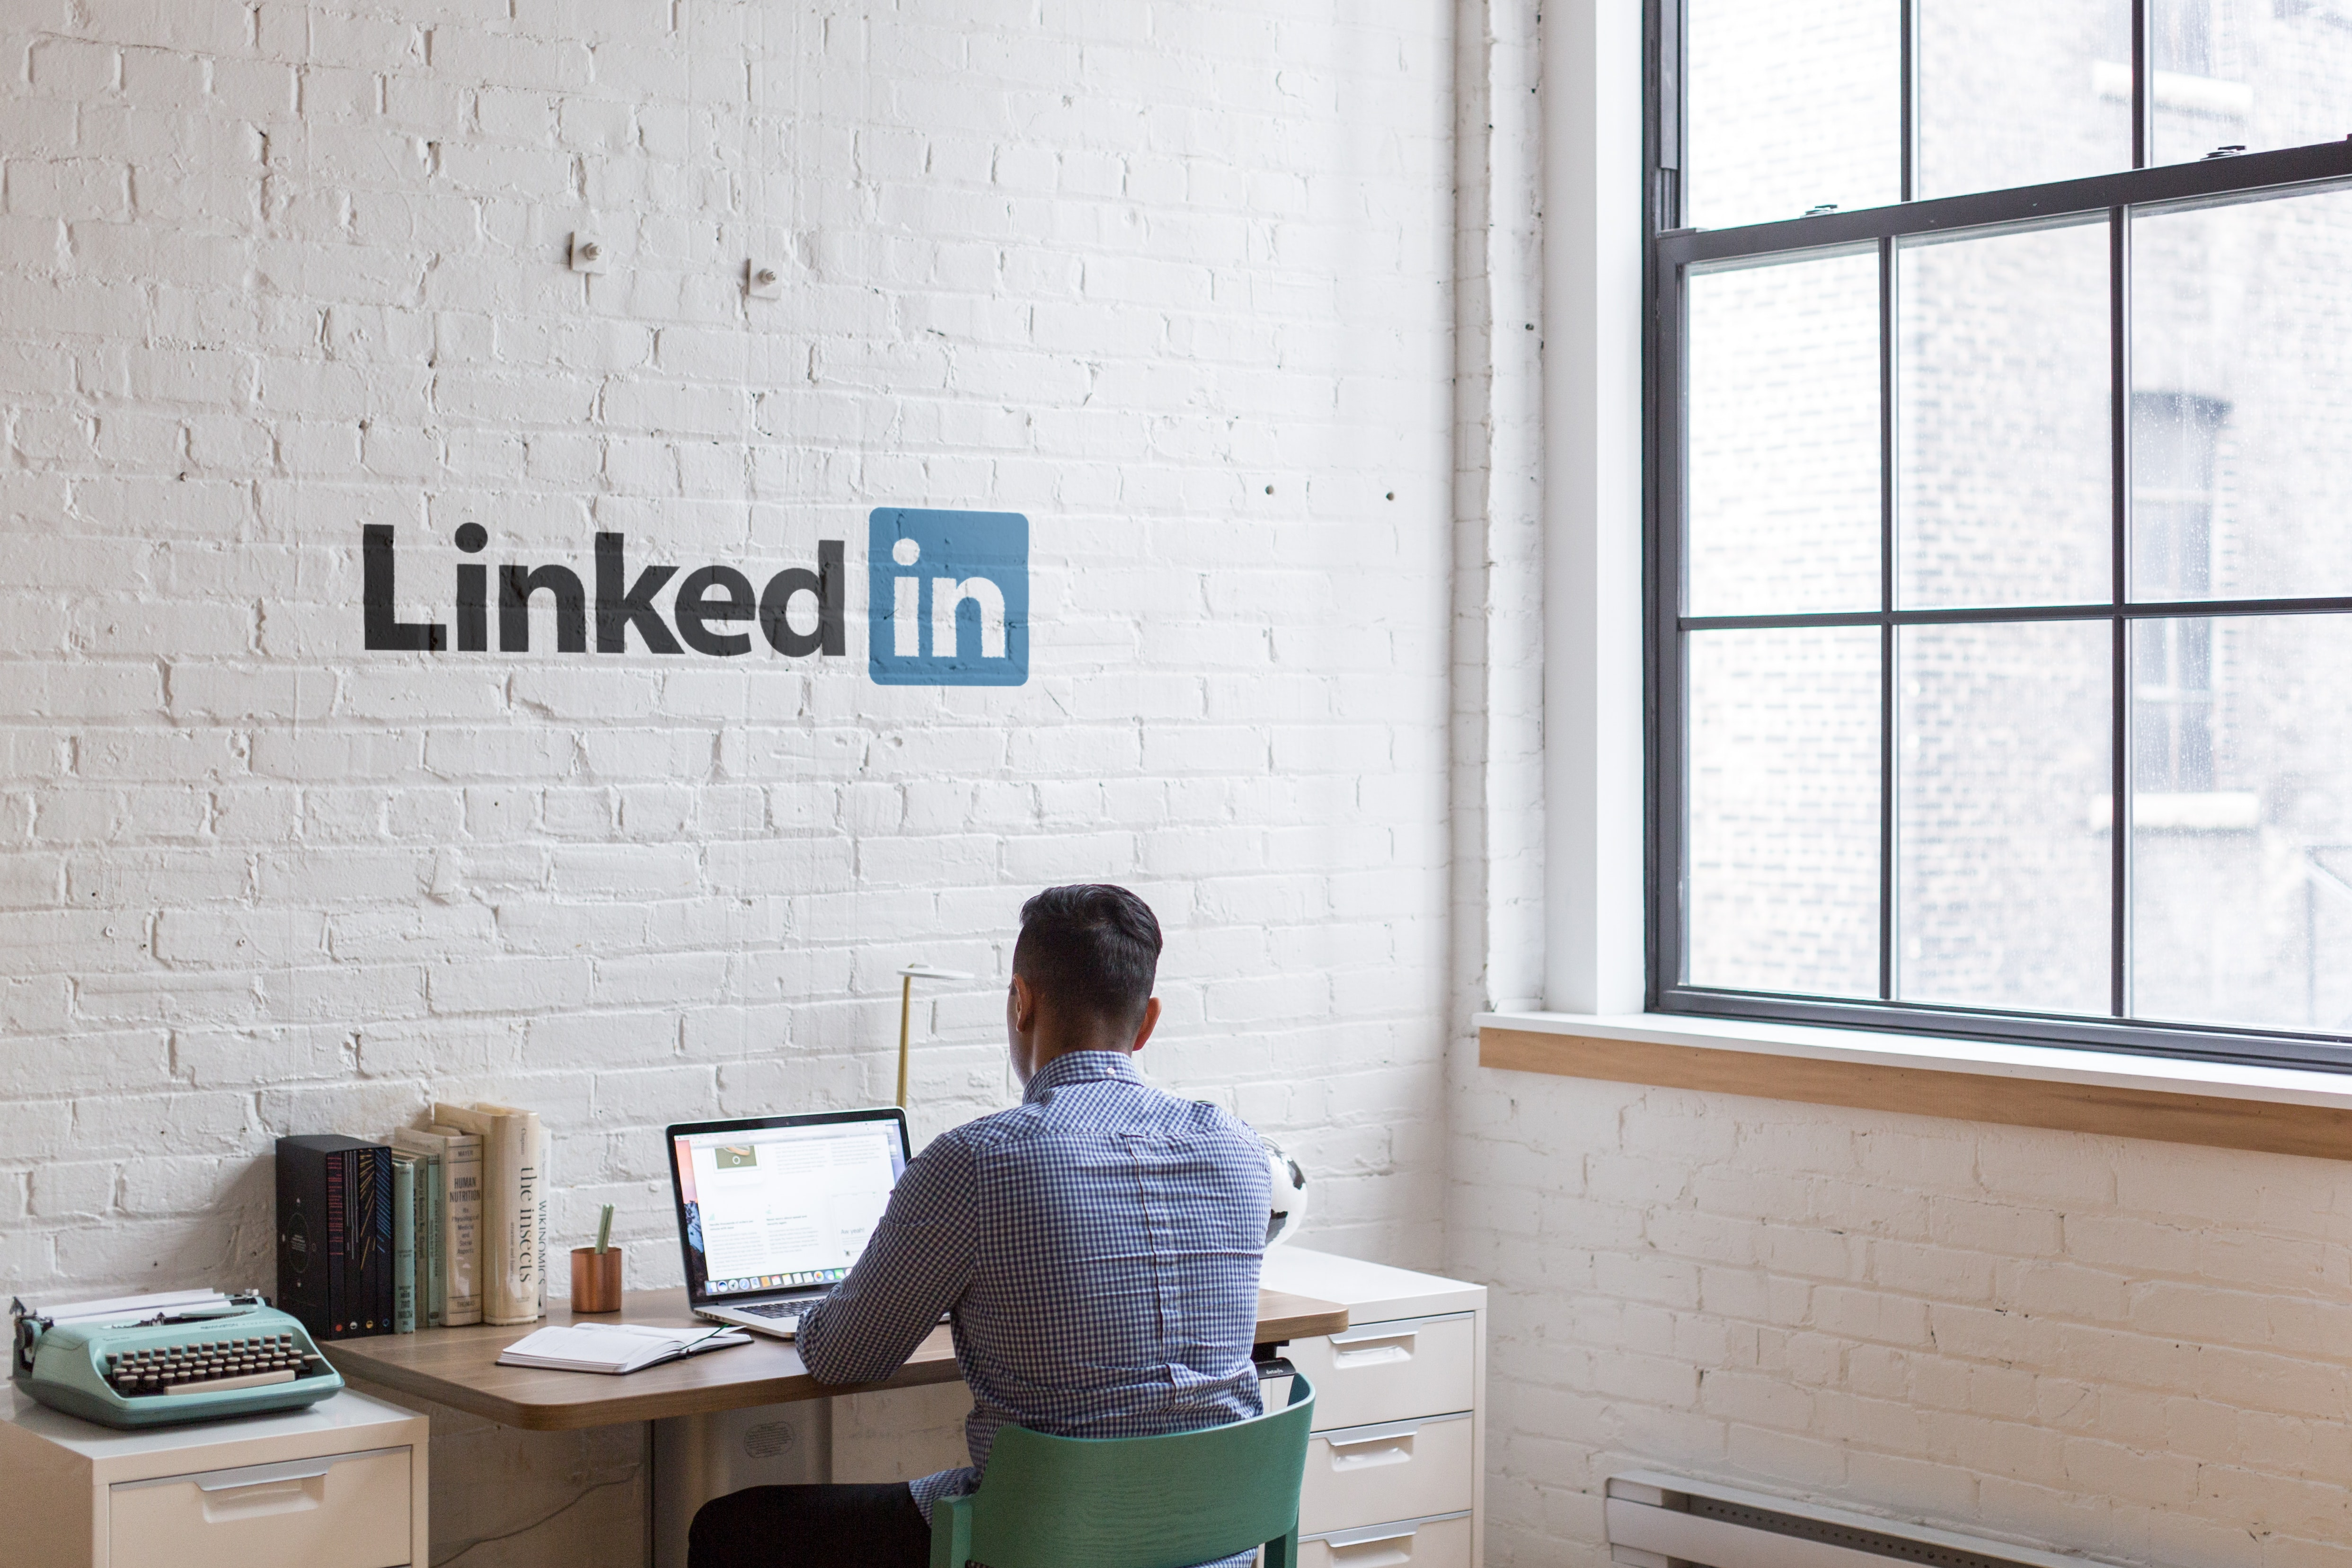 ID Job Search Tip: Update Your LinkedIn Profile